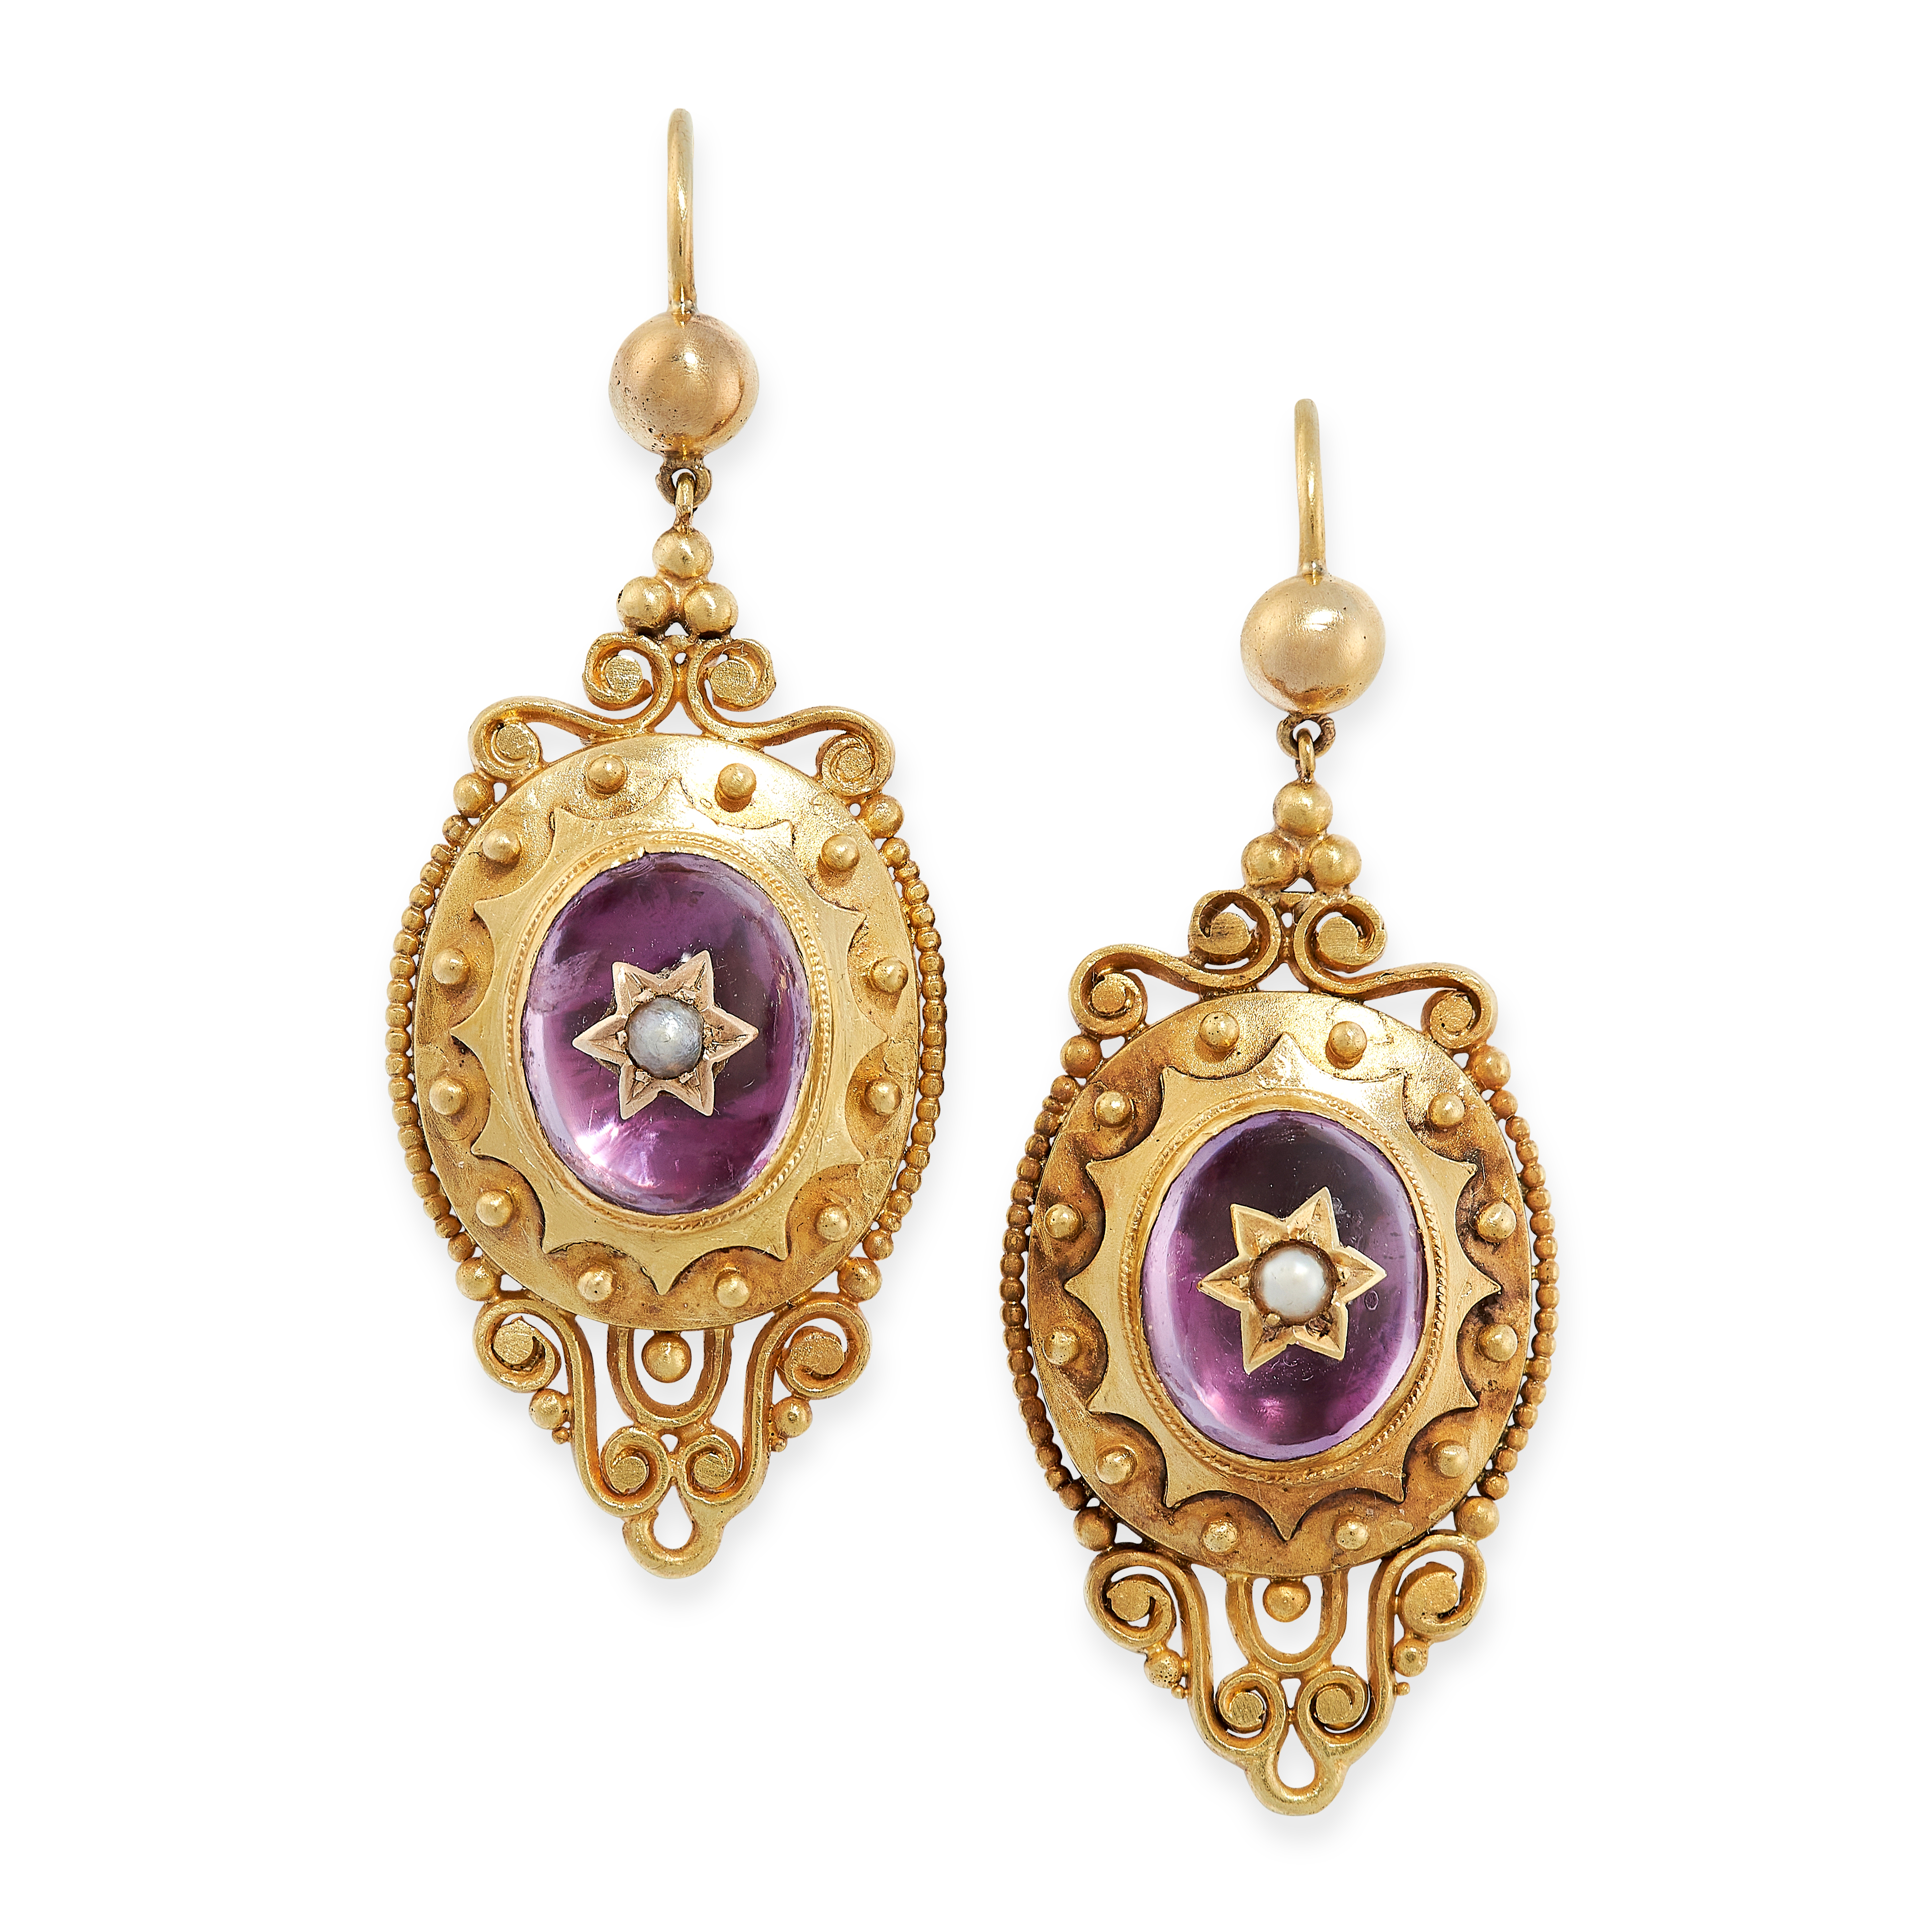 ANTIQUE VICTORIAN GARNET AND PEARL EARRINGS in yellow gold, set with a seed pearl in star motif